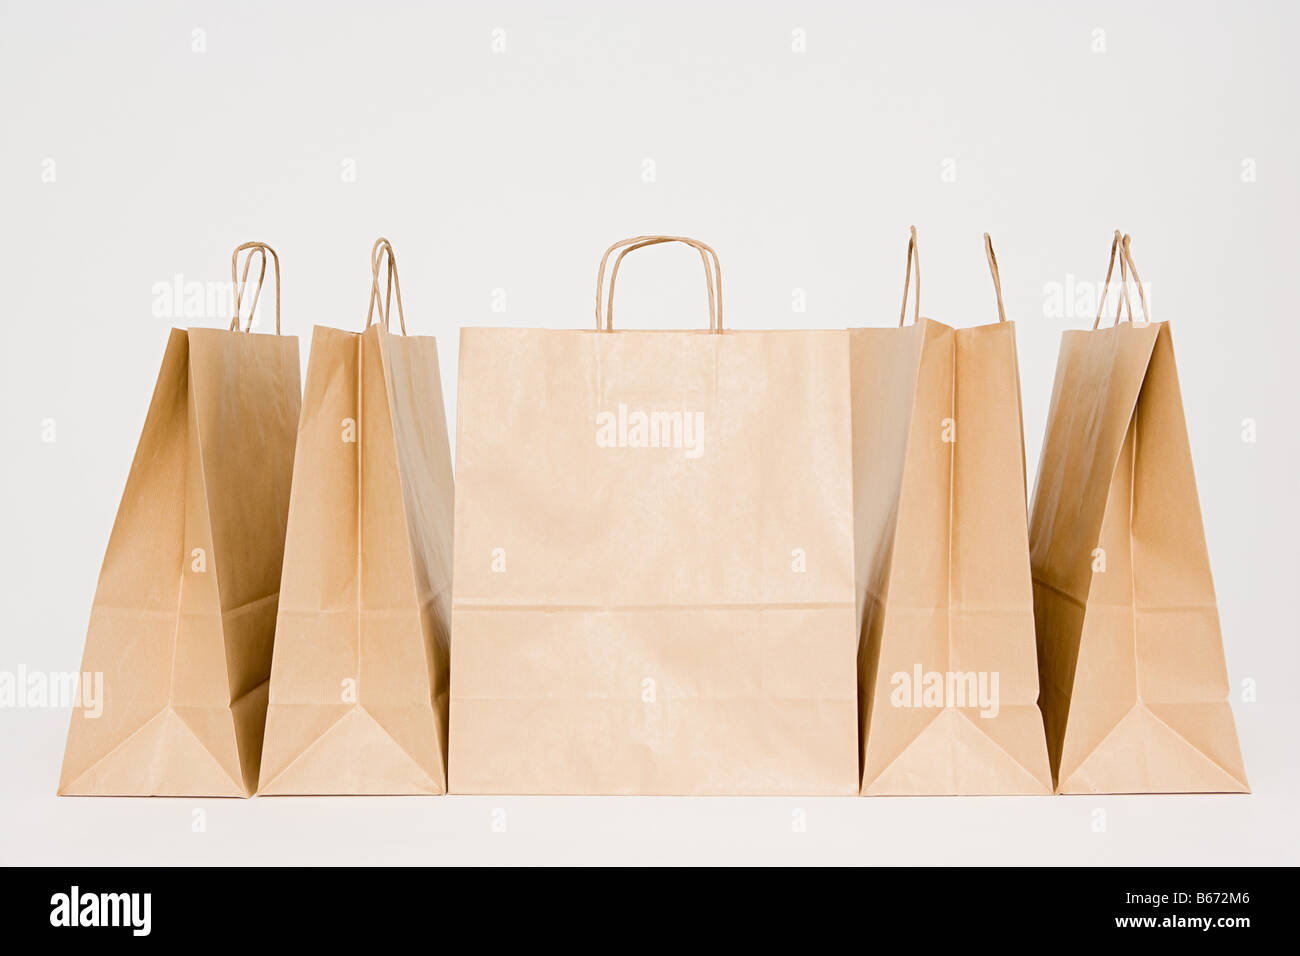 Paper bags in a row - Stock Image